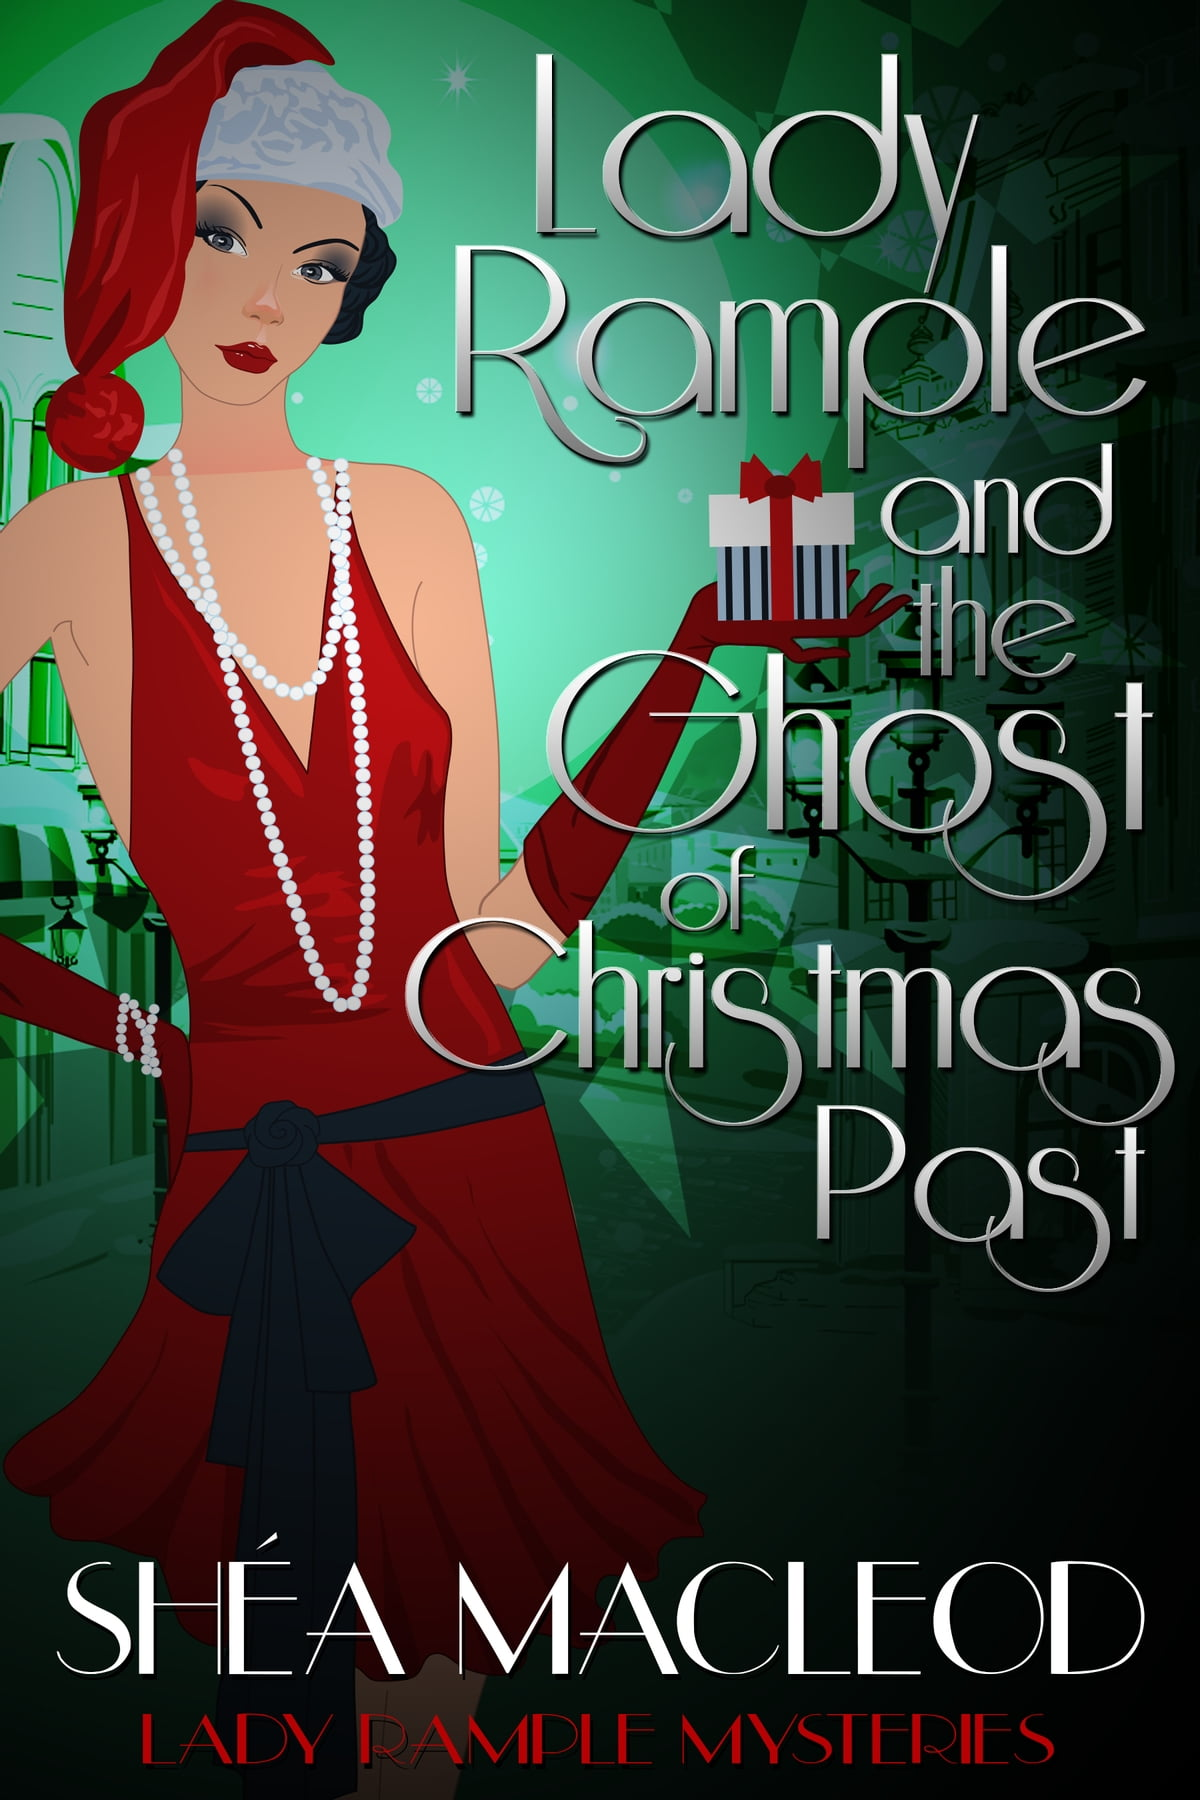 Lady Rample and the Ghost of Christmas